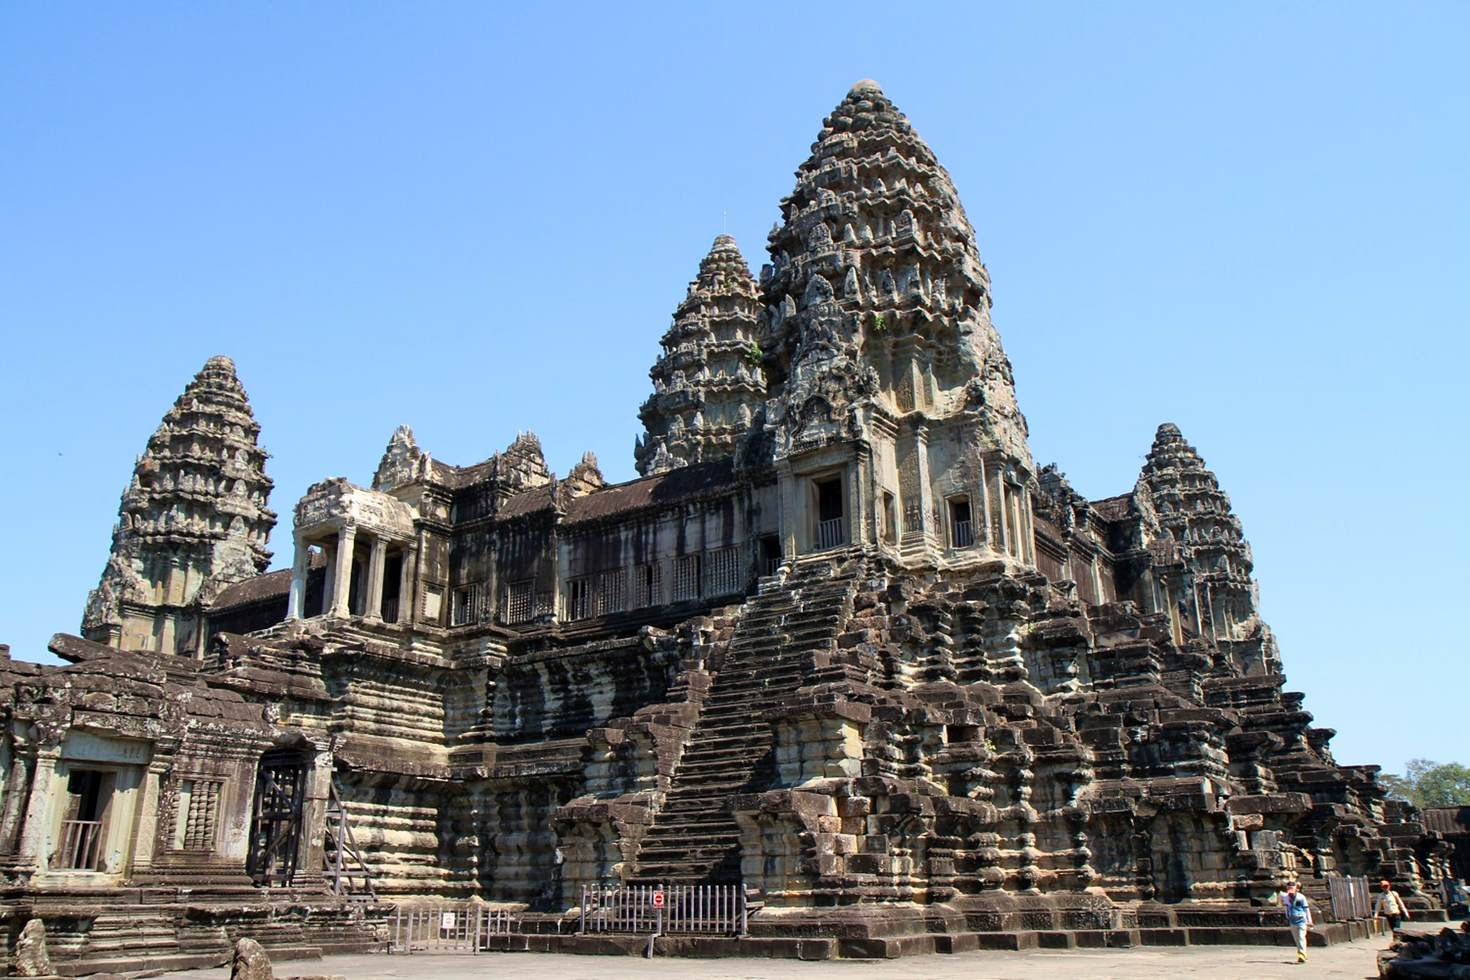 The highest towers which you can see in the third structure in Angkor Wat